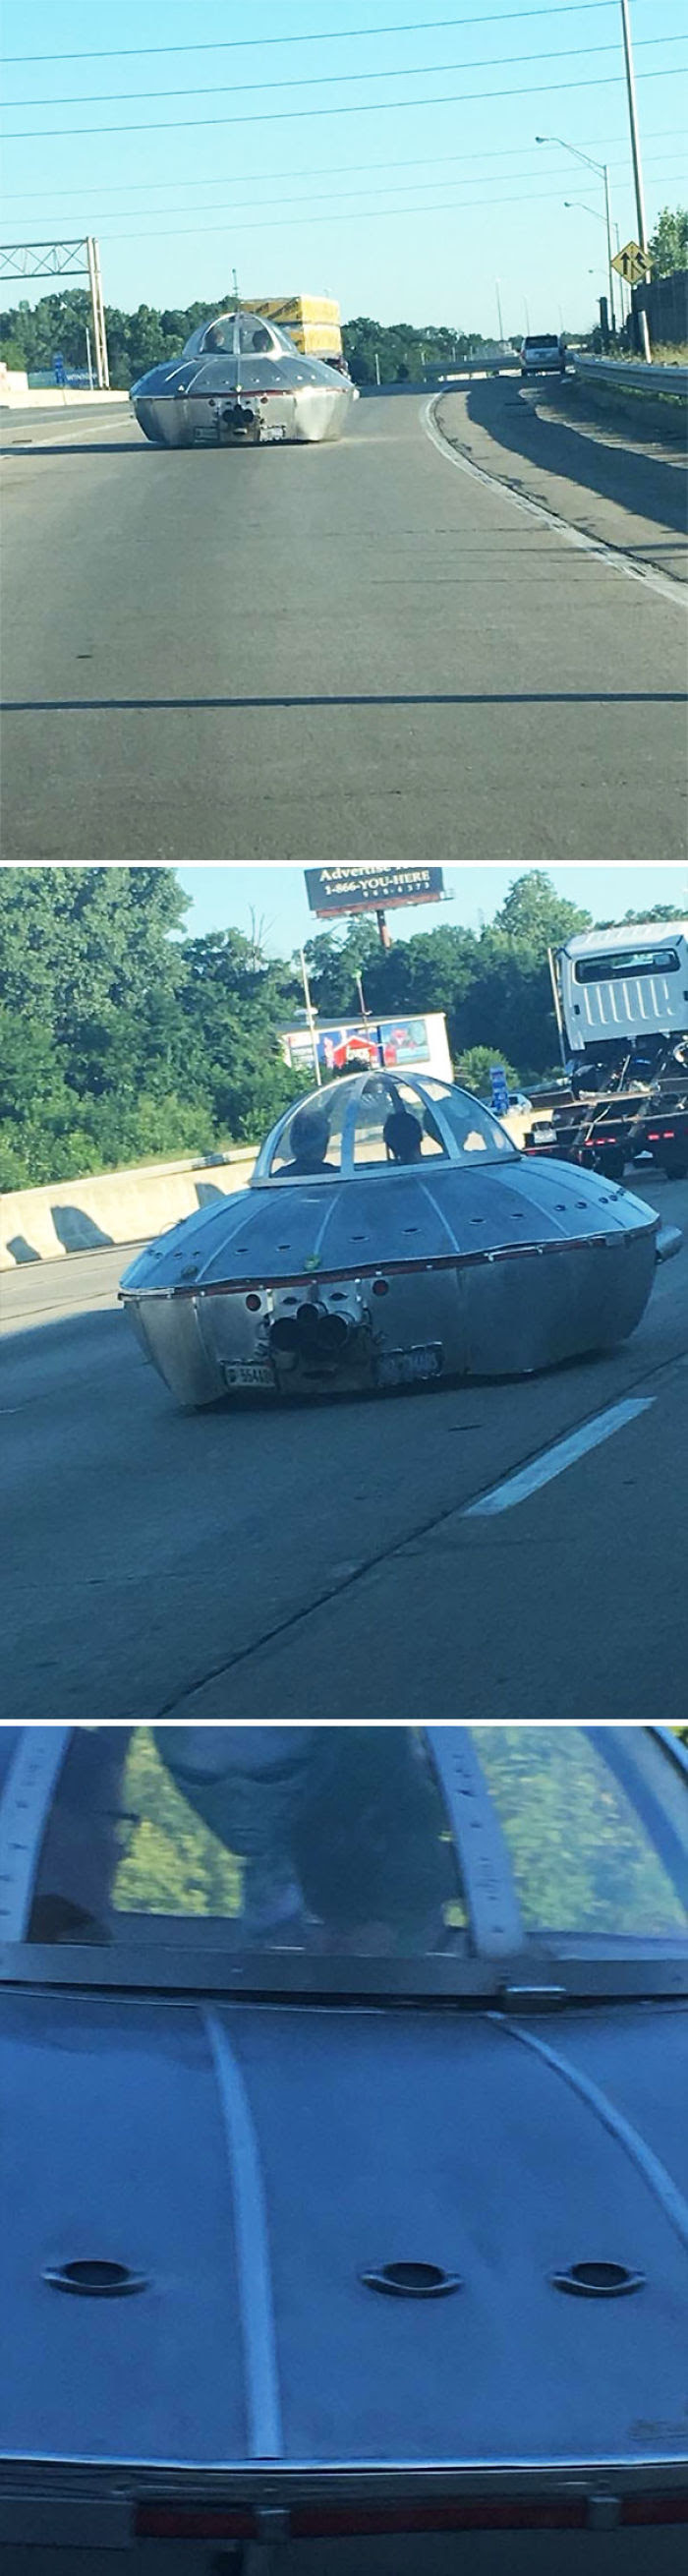 Was Driving On The Road Today And Was Cut Off By An Illegal Alien